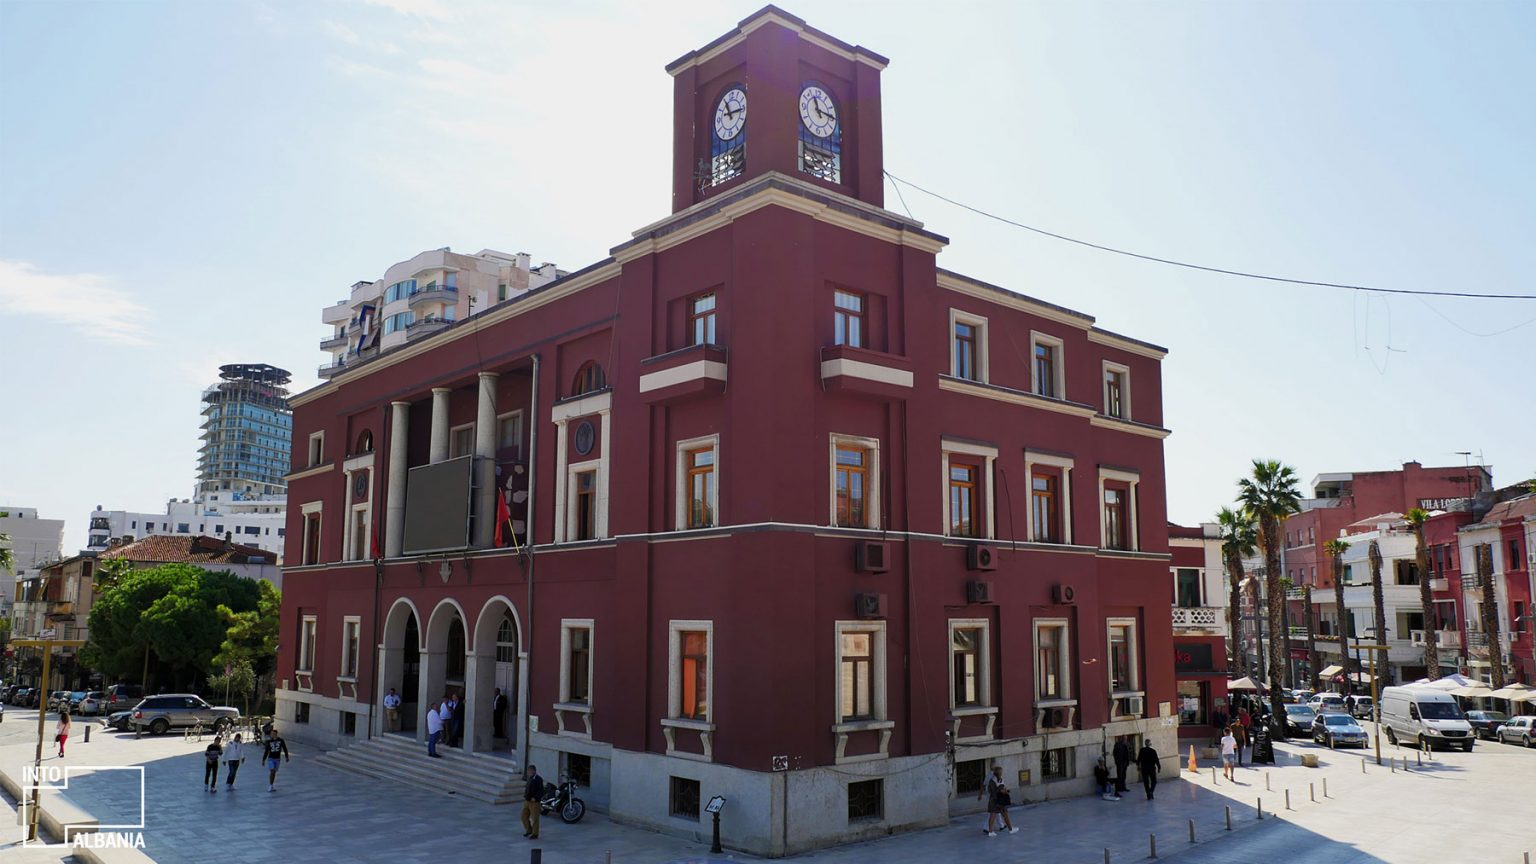 Municipality Hall at the Illyria Square, Durrës, photo by IntoAlbania.